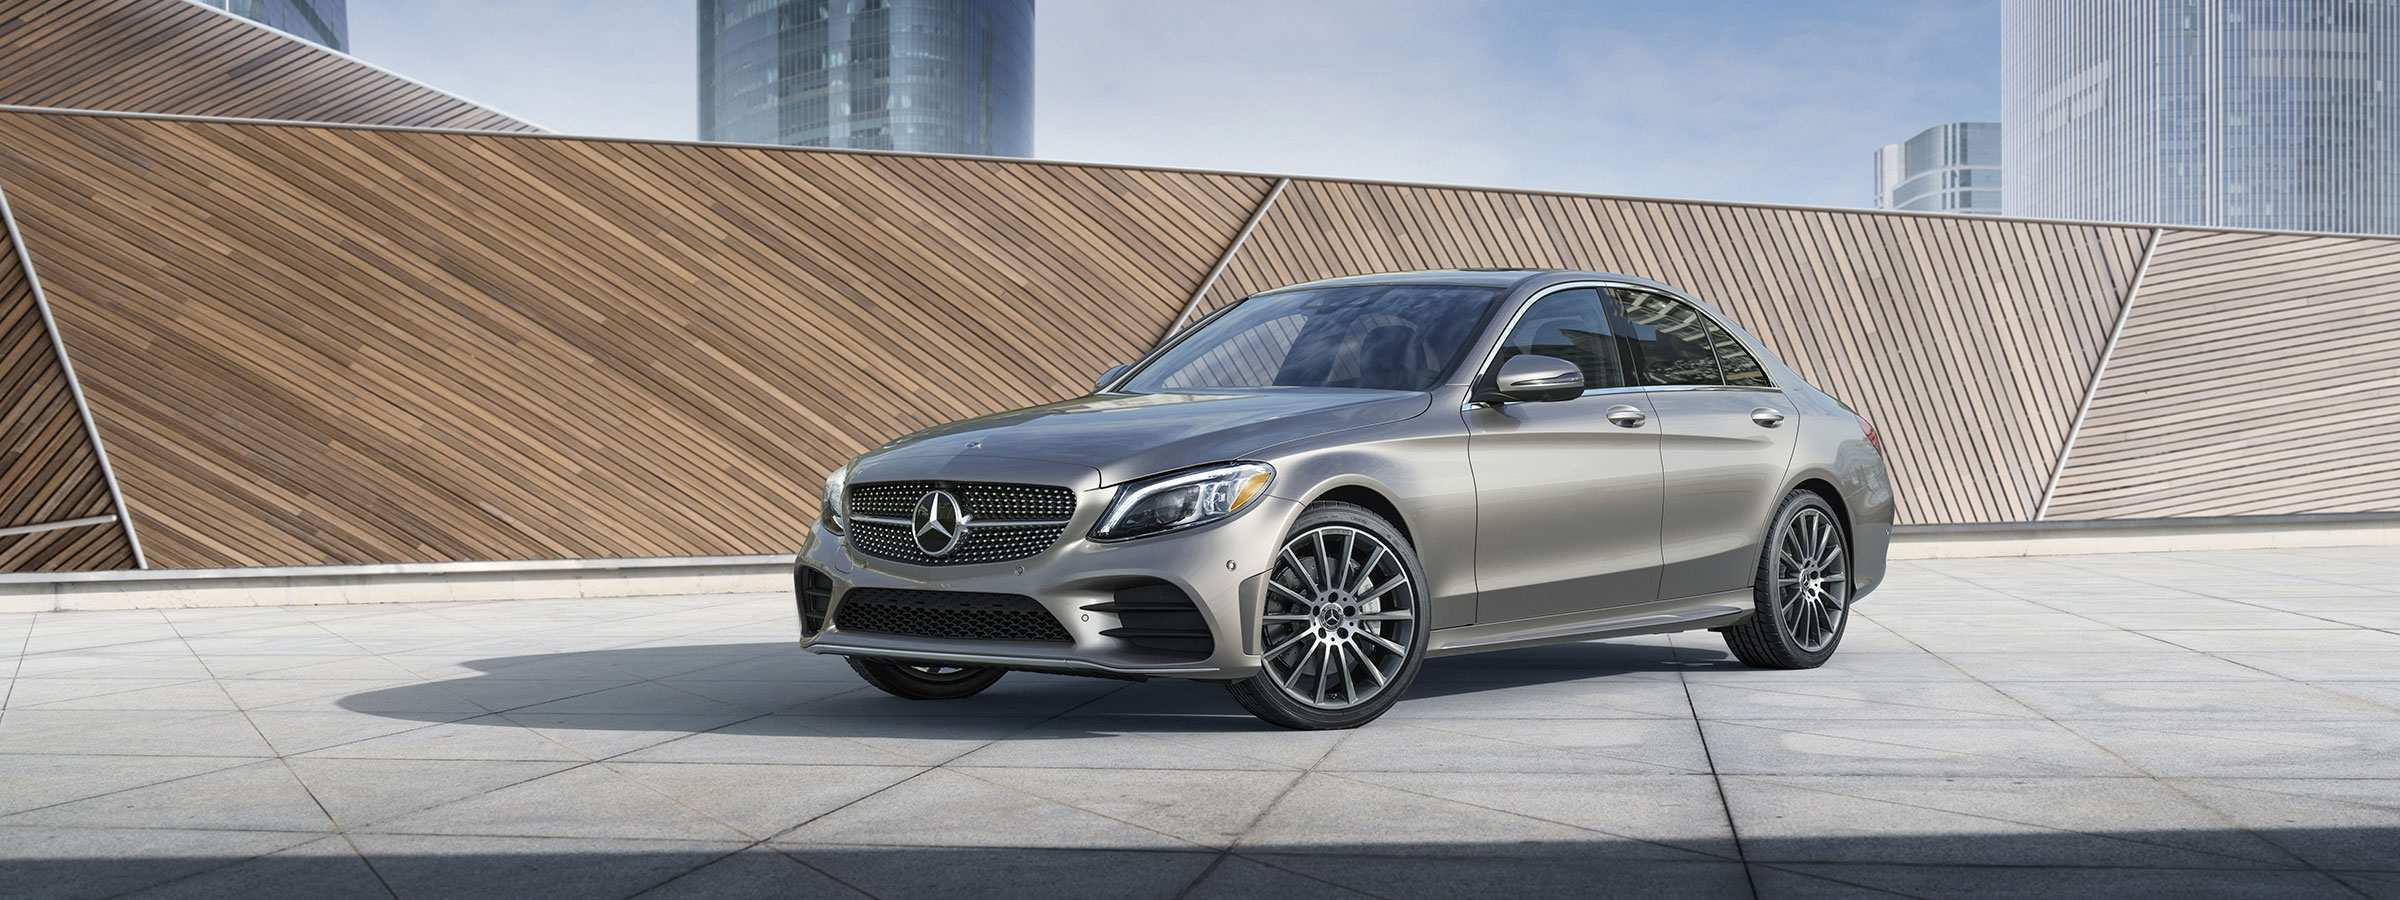 16 All New C250 Mercedes 2019 Release by C250 Mercedes 2019